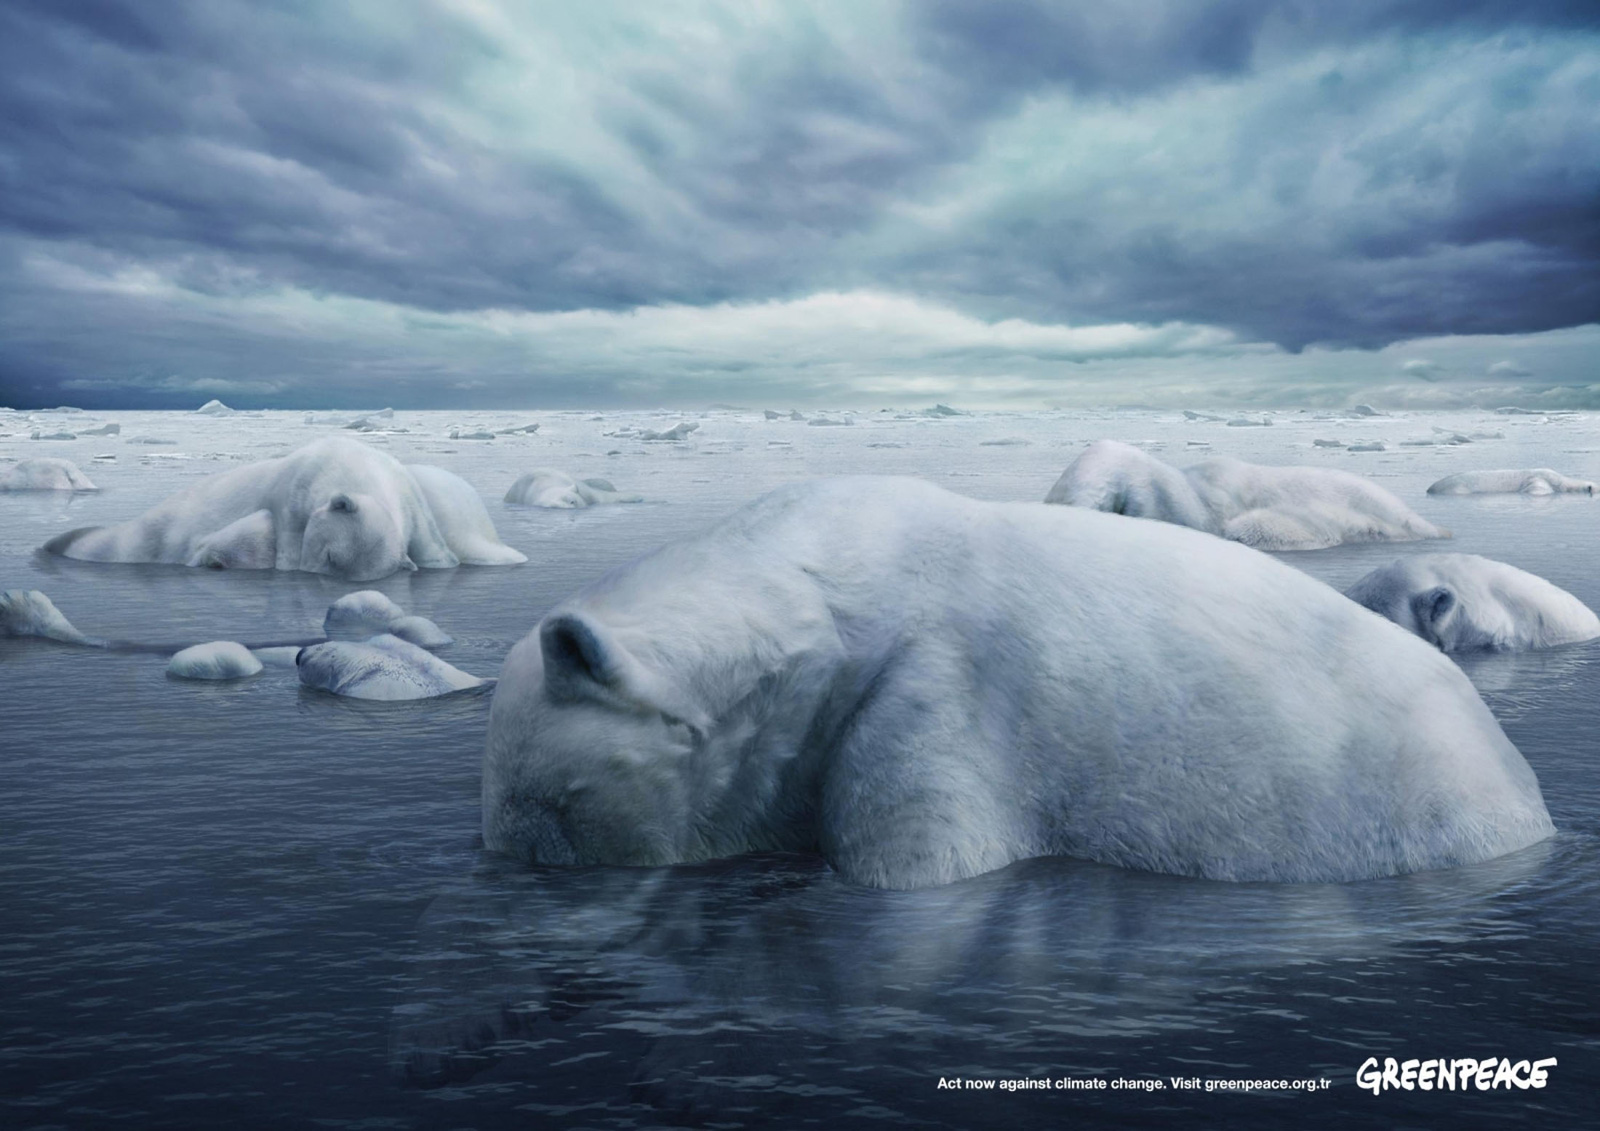 greenpeace-polar-bears.jpg